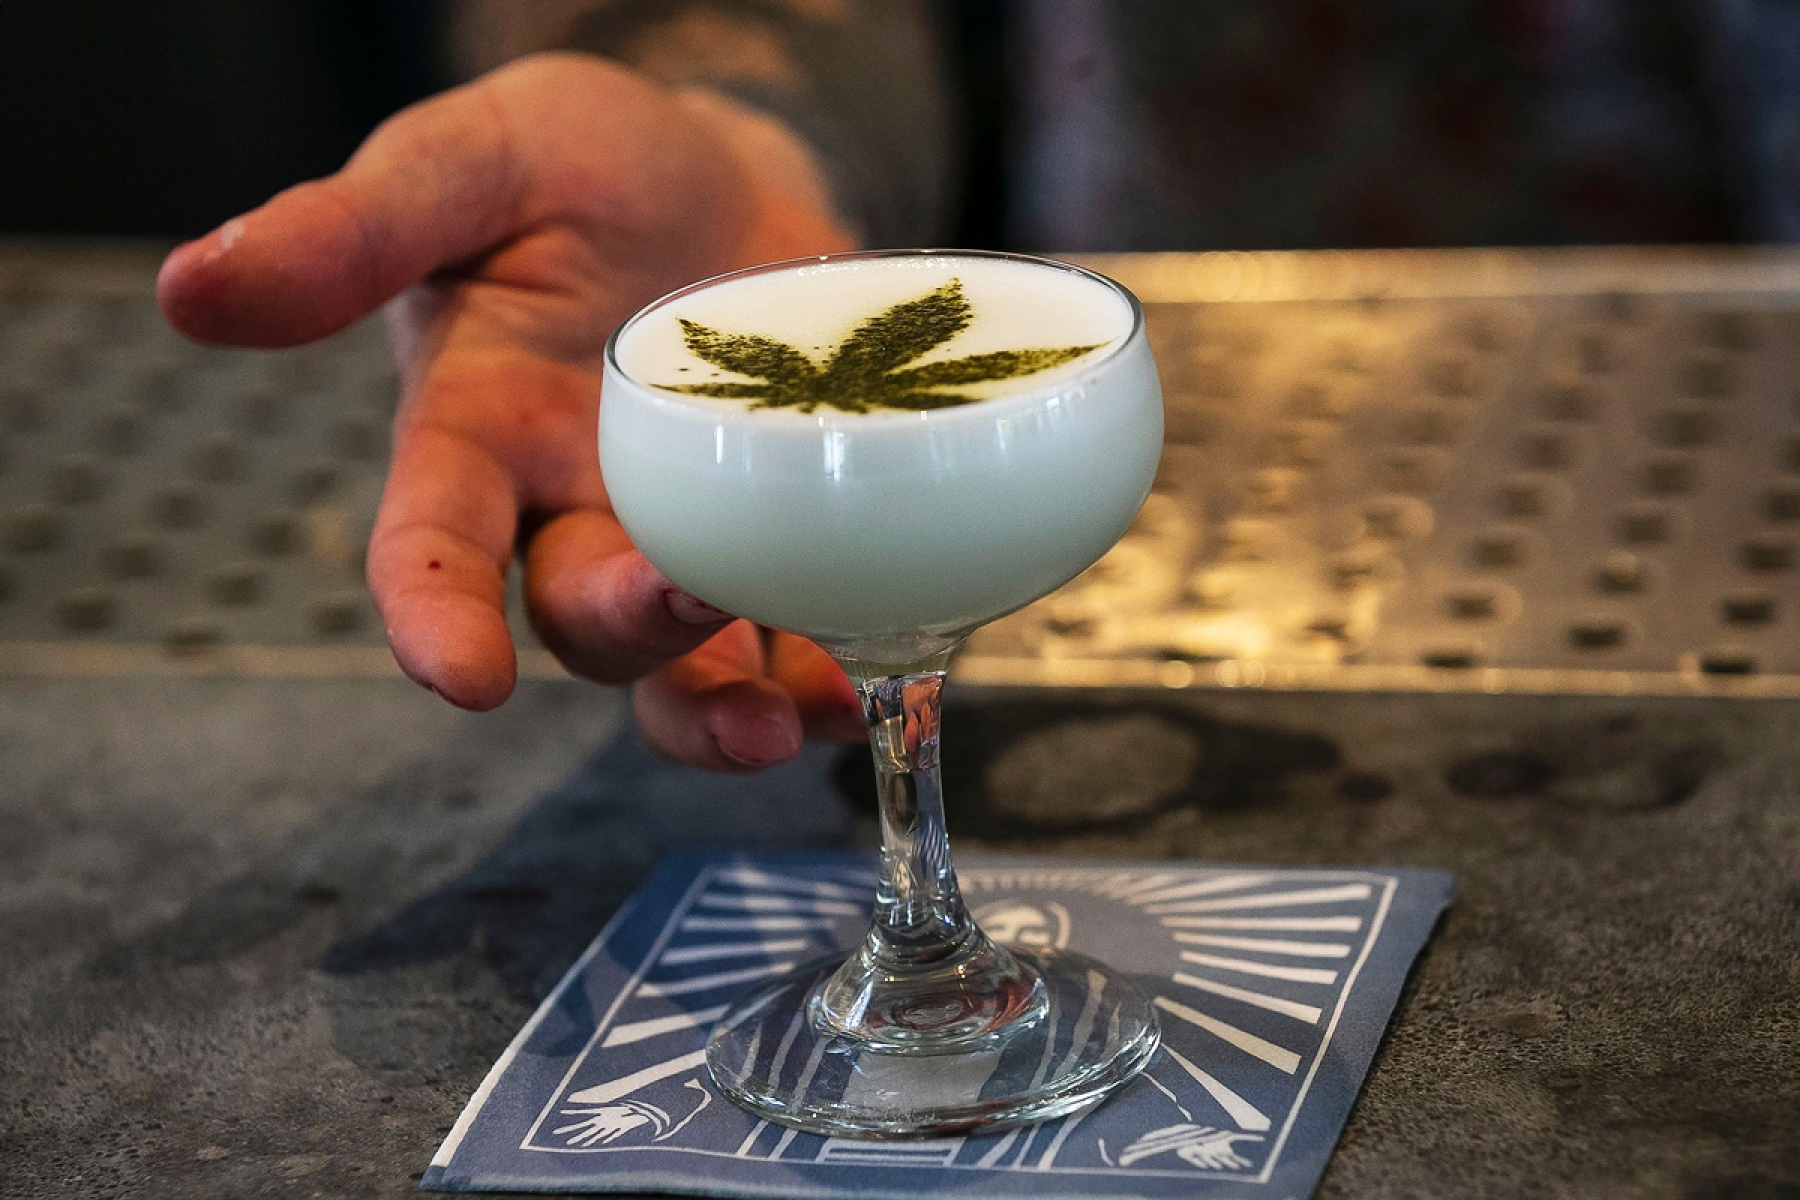 Maxwell Reis, beverage director serves a drink containing Cannabidol CBD extract with a marijuana leaf motif at the Gracias Madre restaurant in West Hollywood, California.